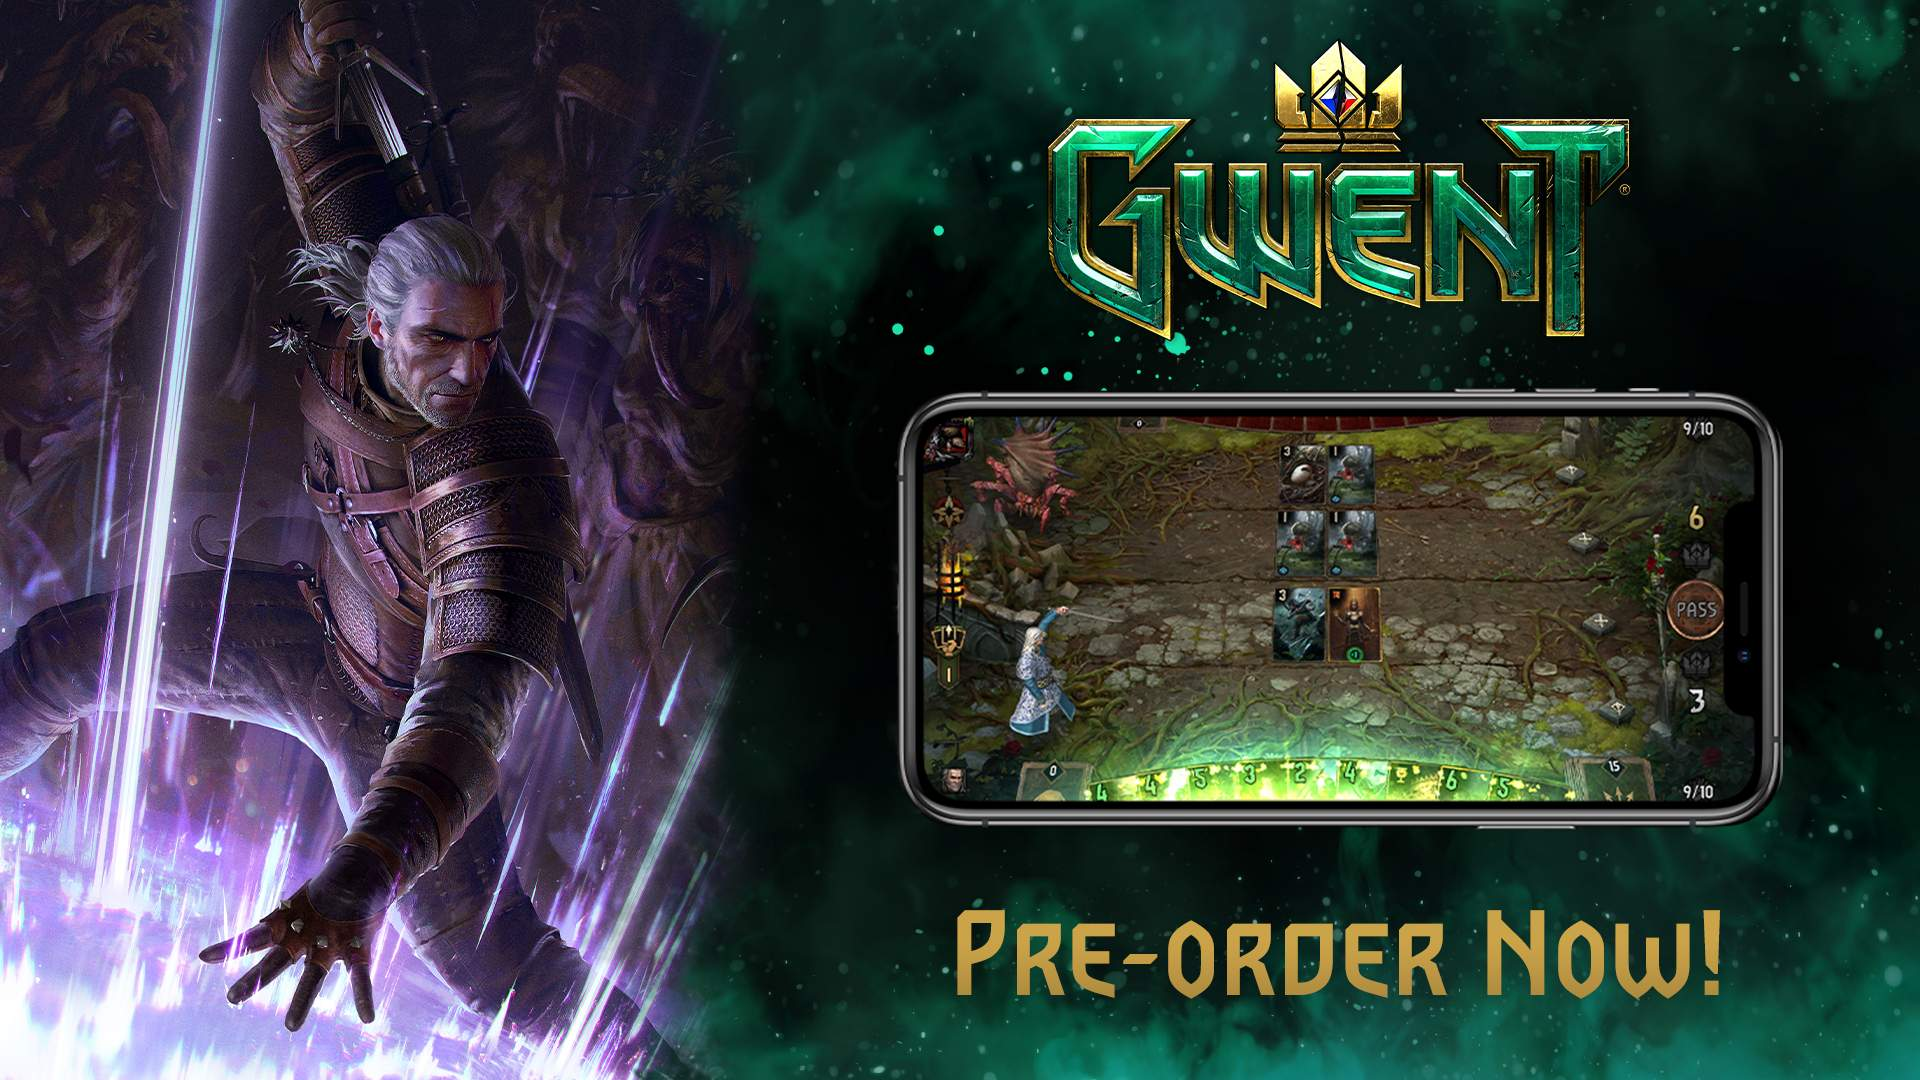 Gwent: The Witcher Card Game iOS Release Date Announced by